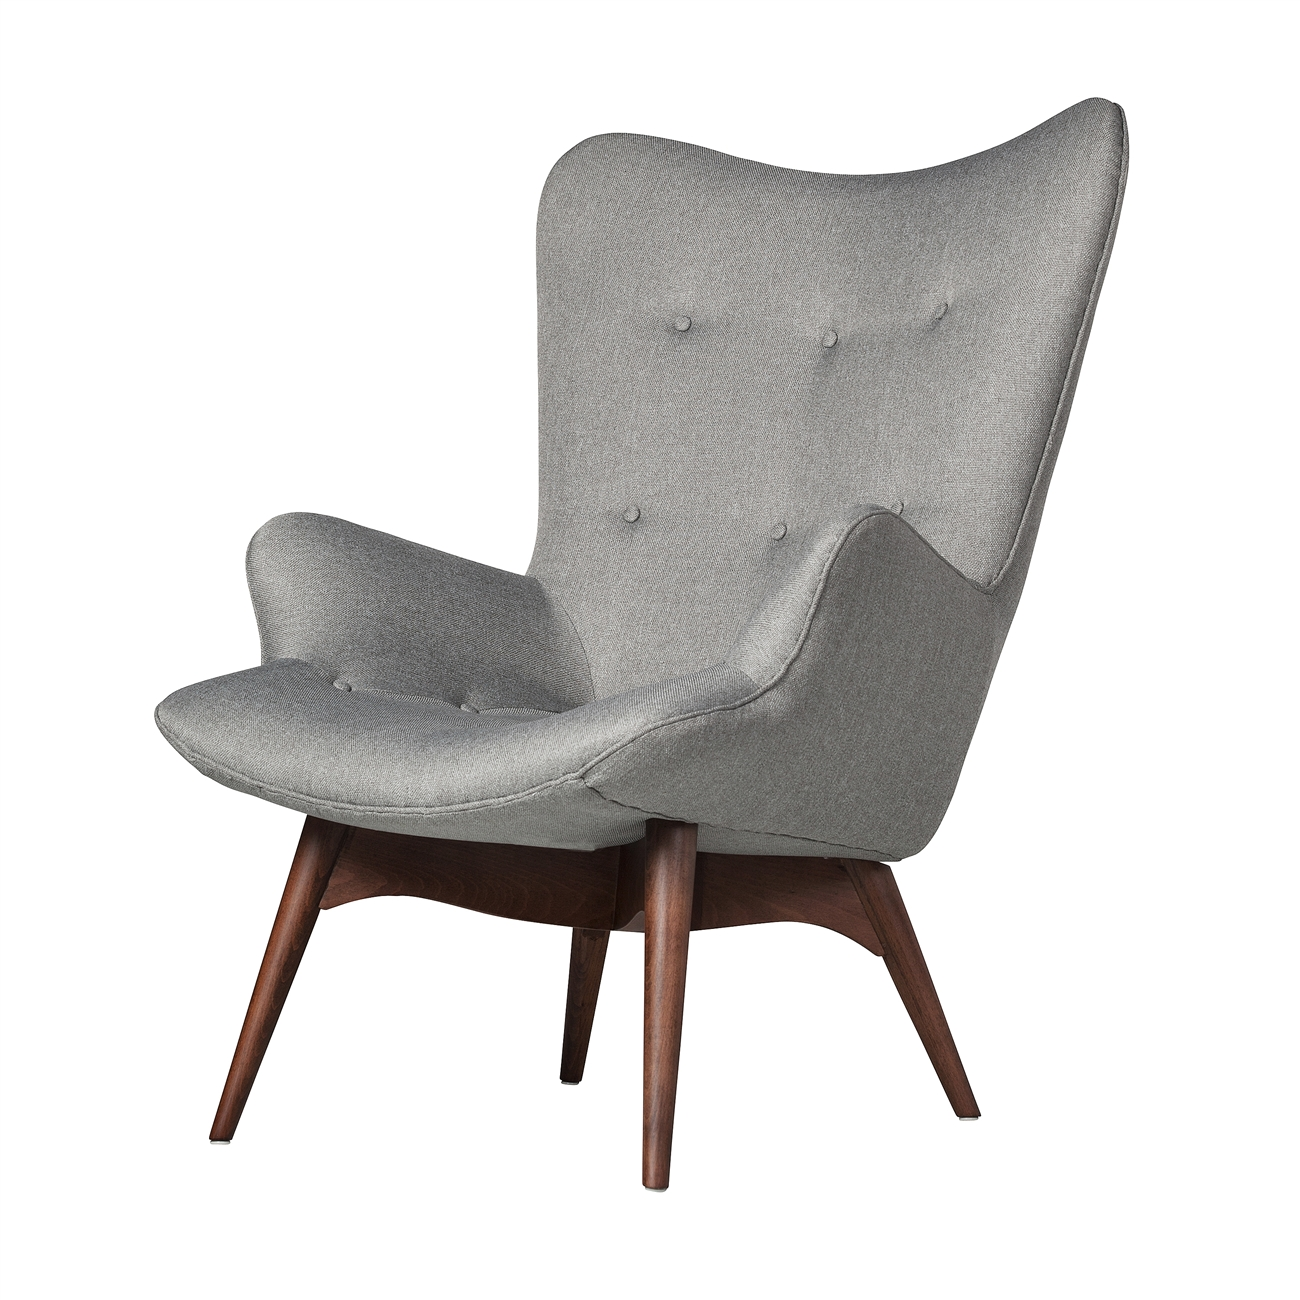 Featherston Style Contour Chair in Grey